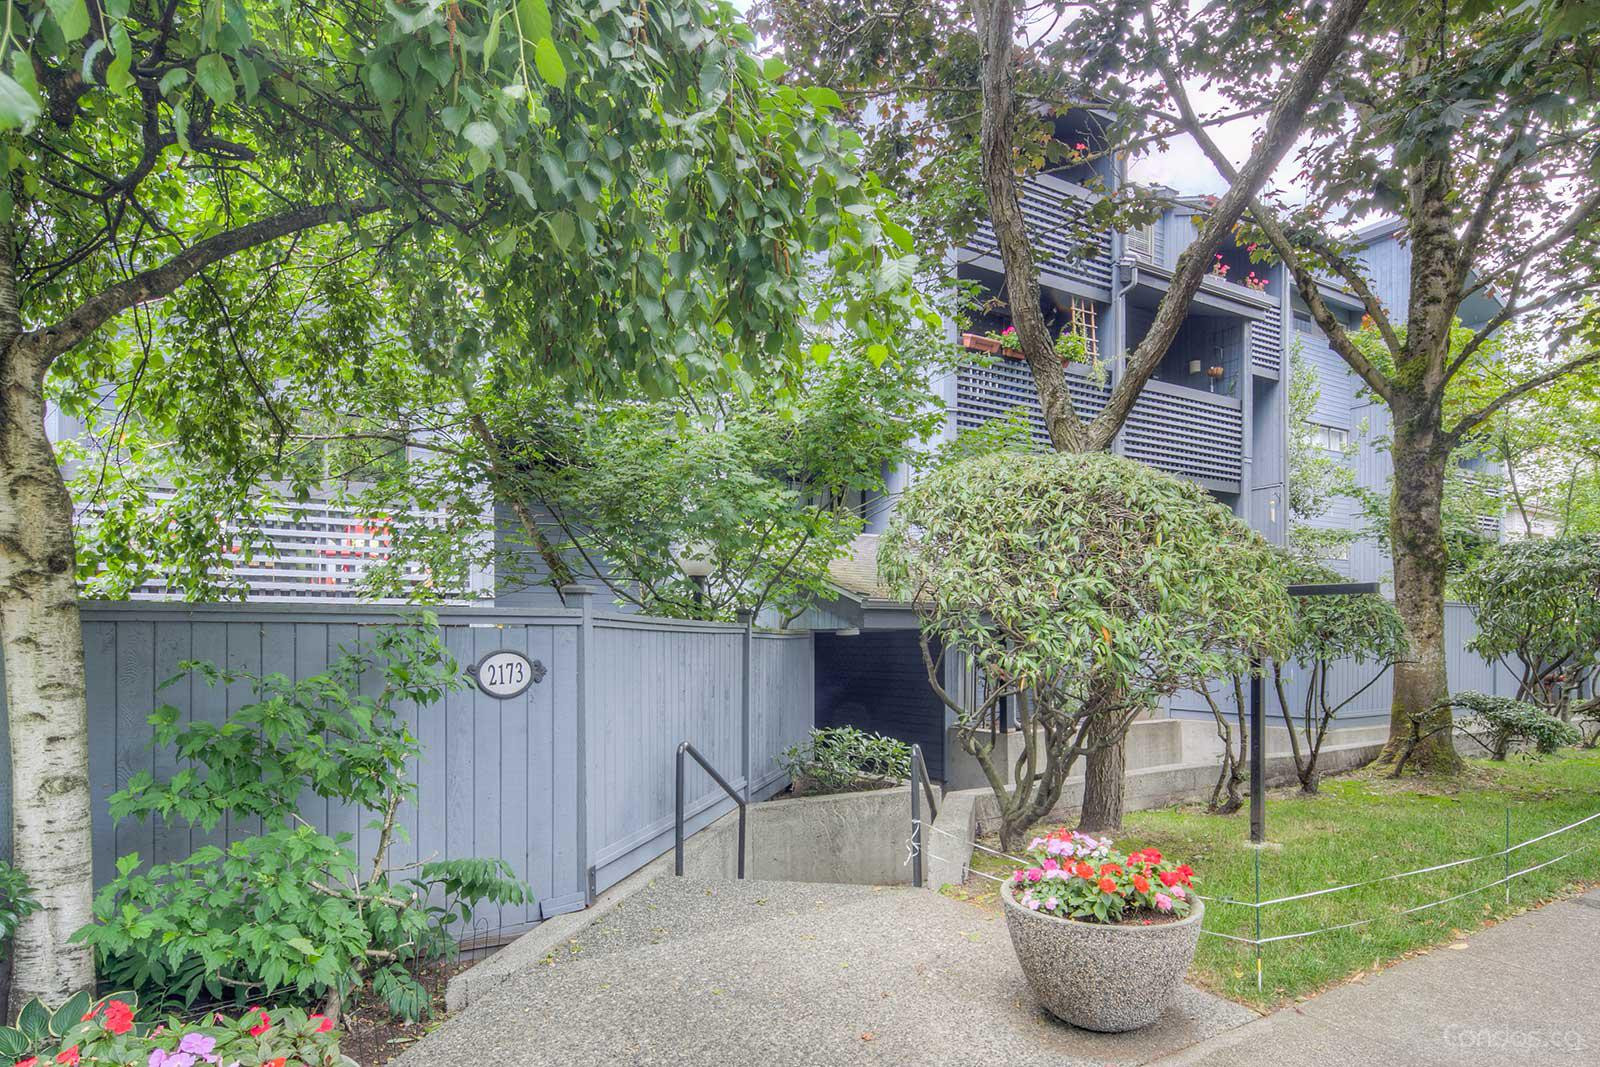 The Malibu at 2173 W 6th Ave, Vancouver 1